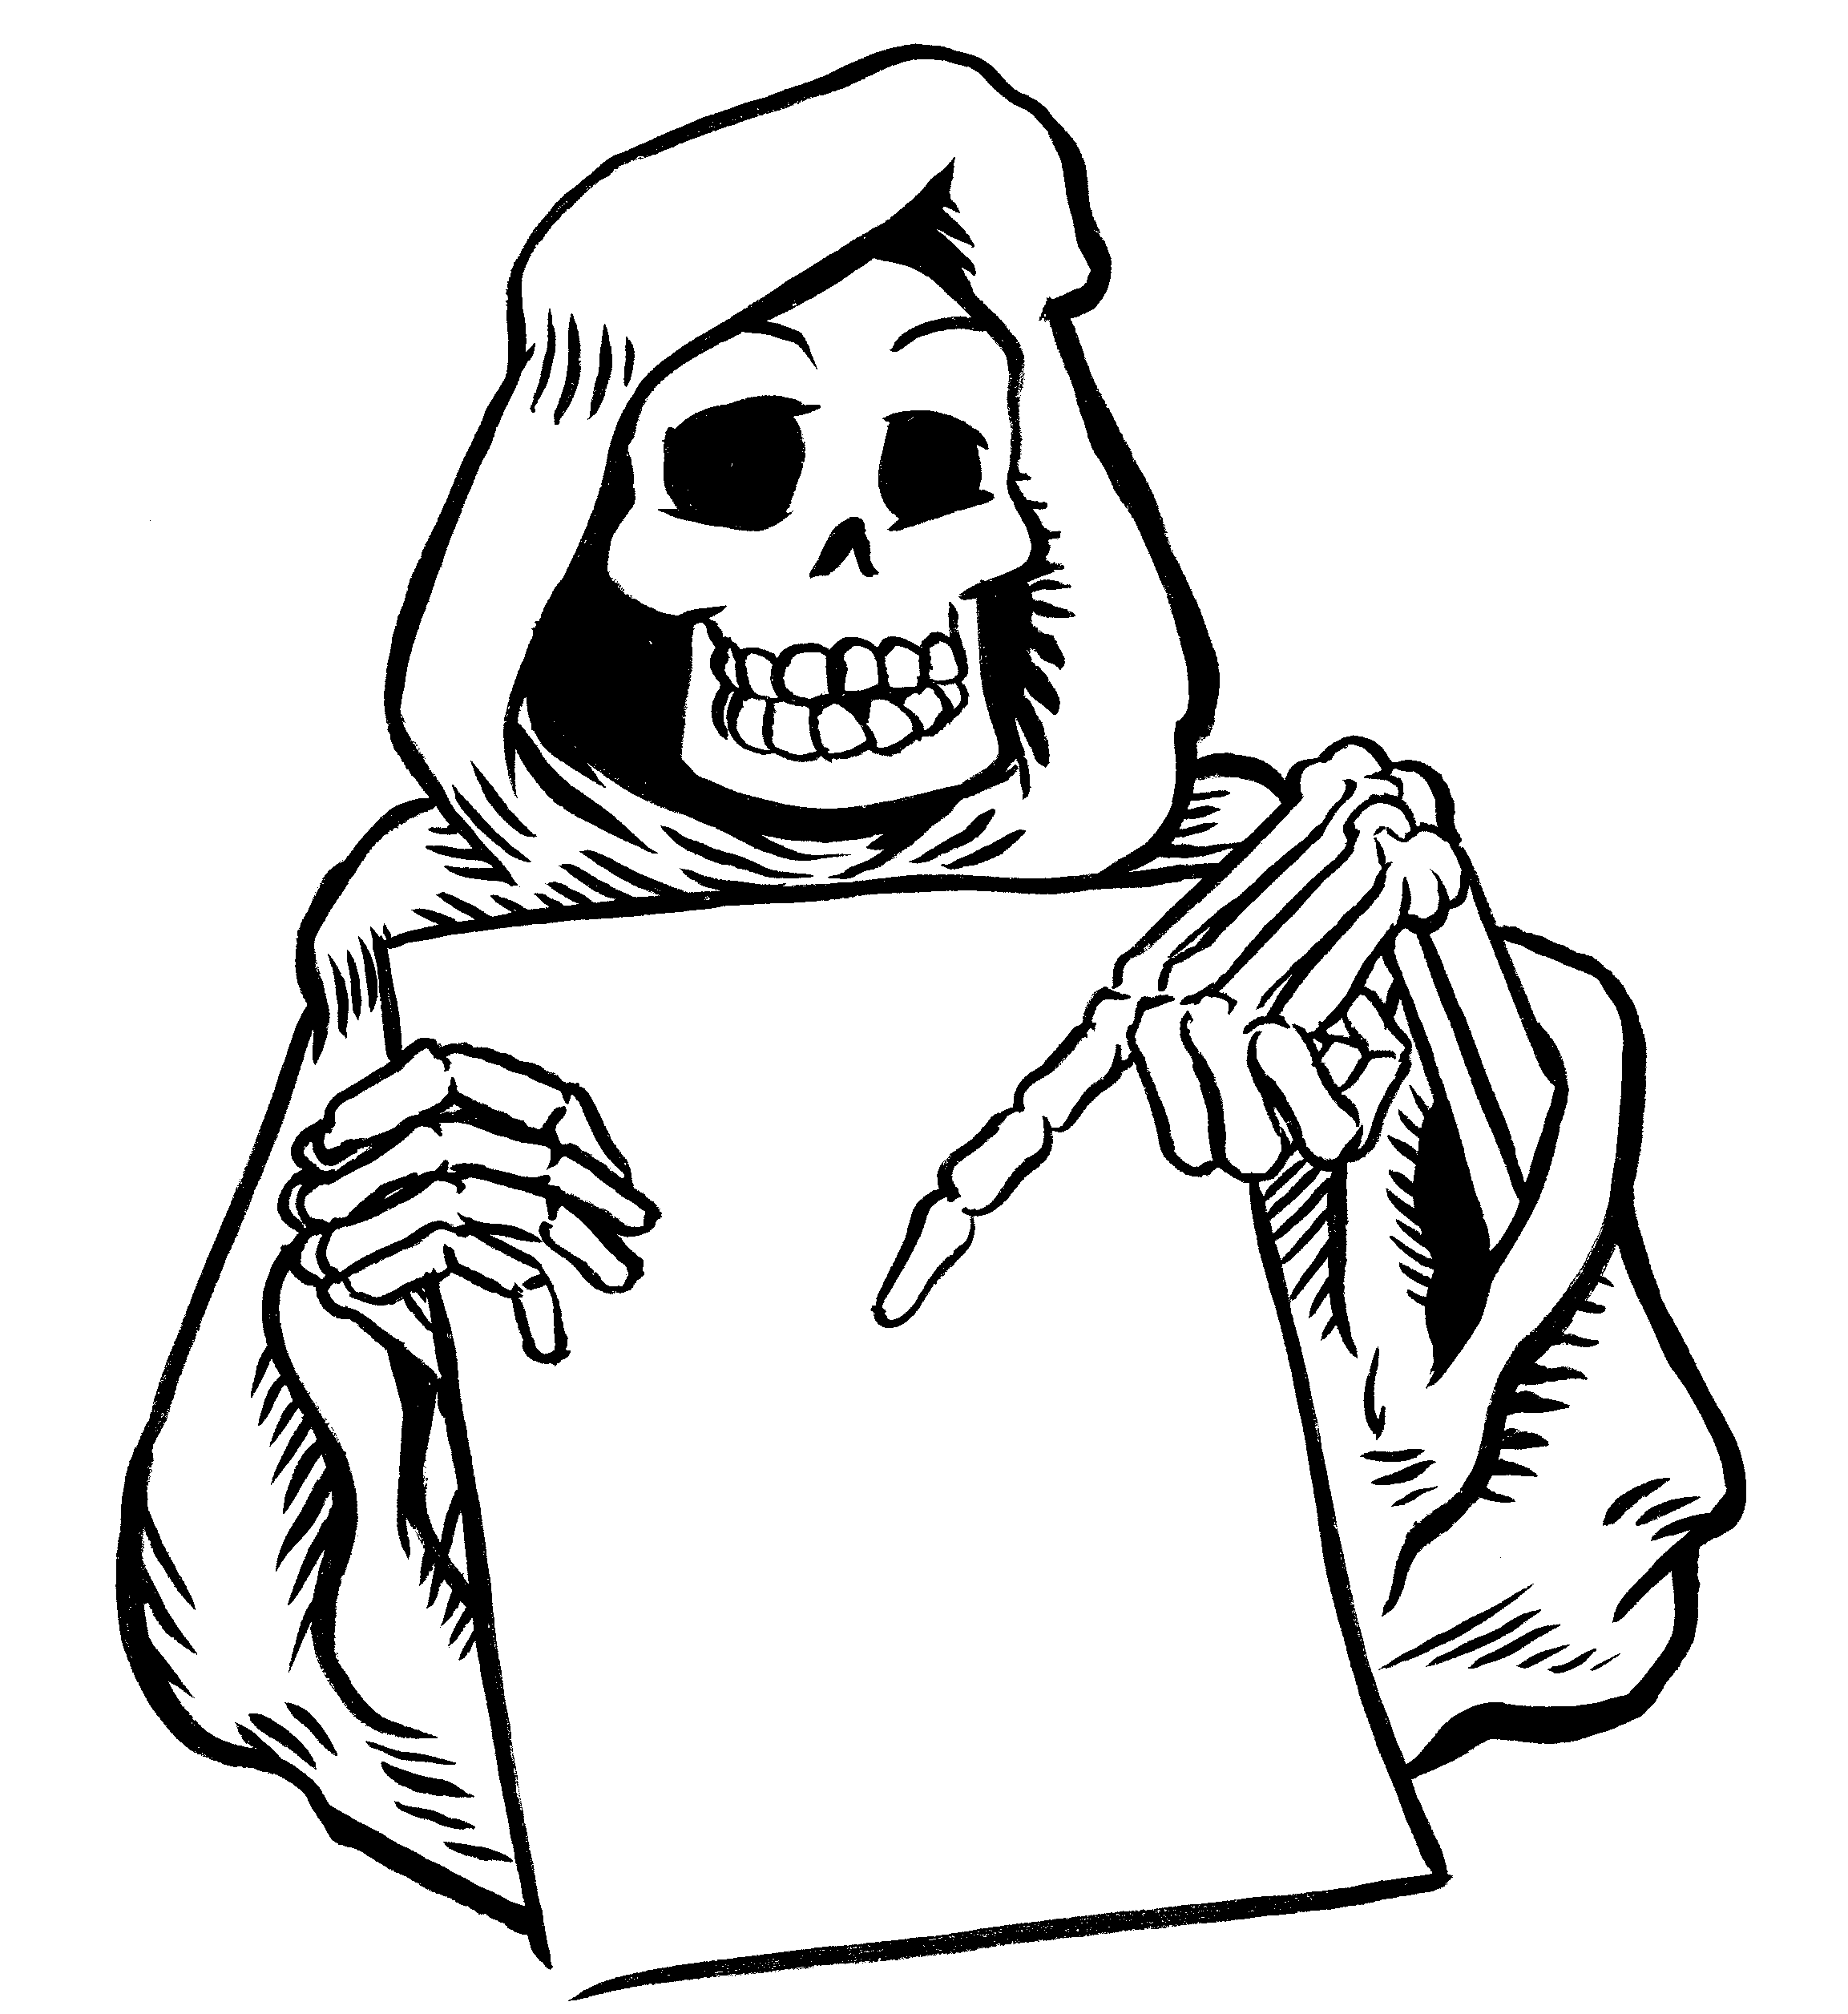 Halloween Coloring Pages - Dr. Odd